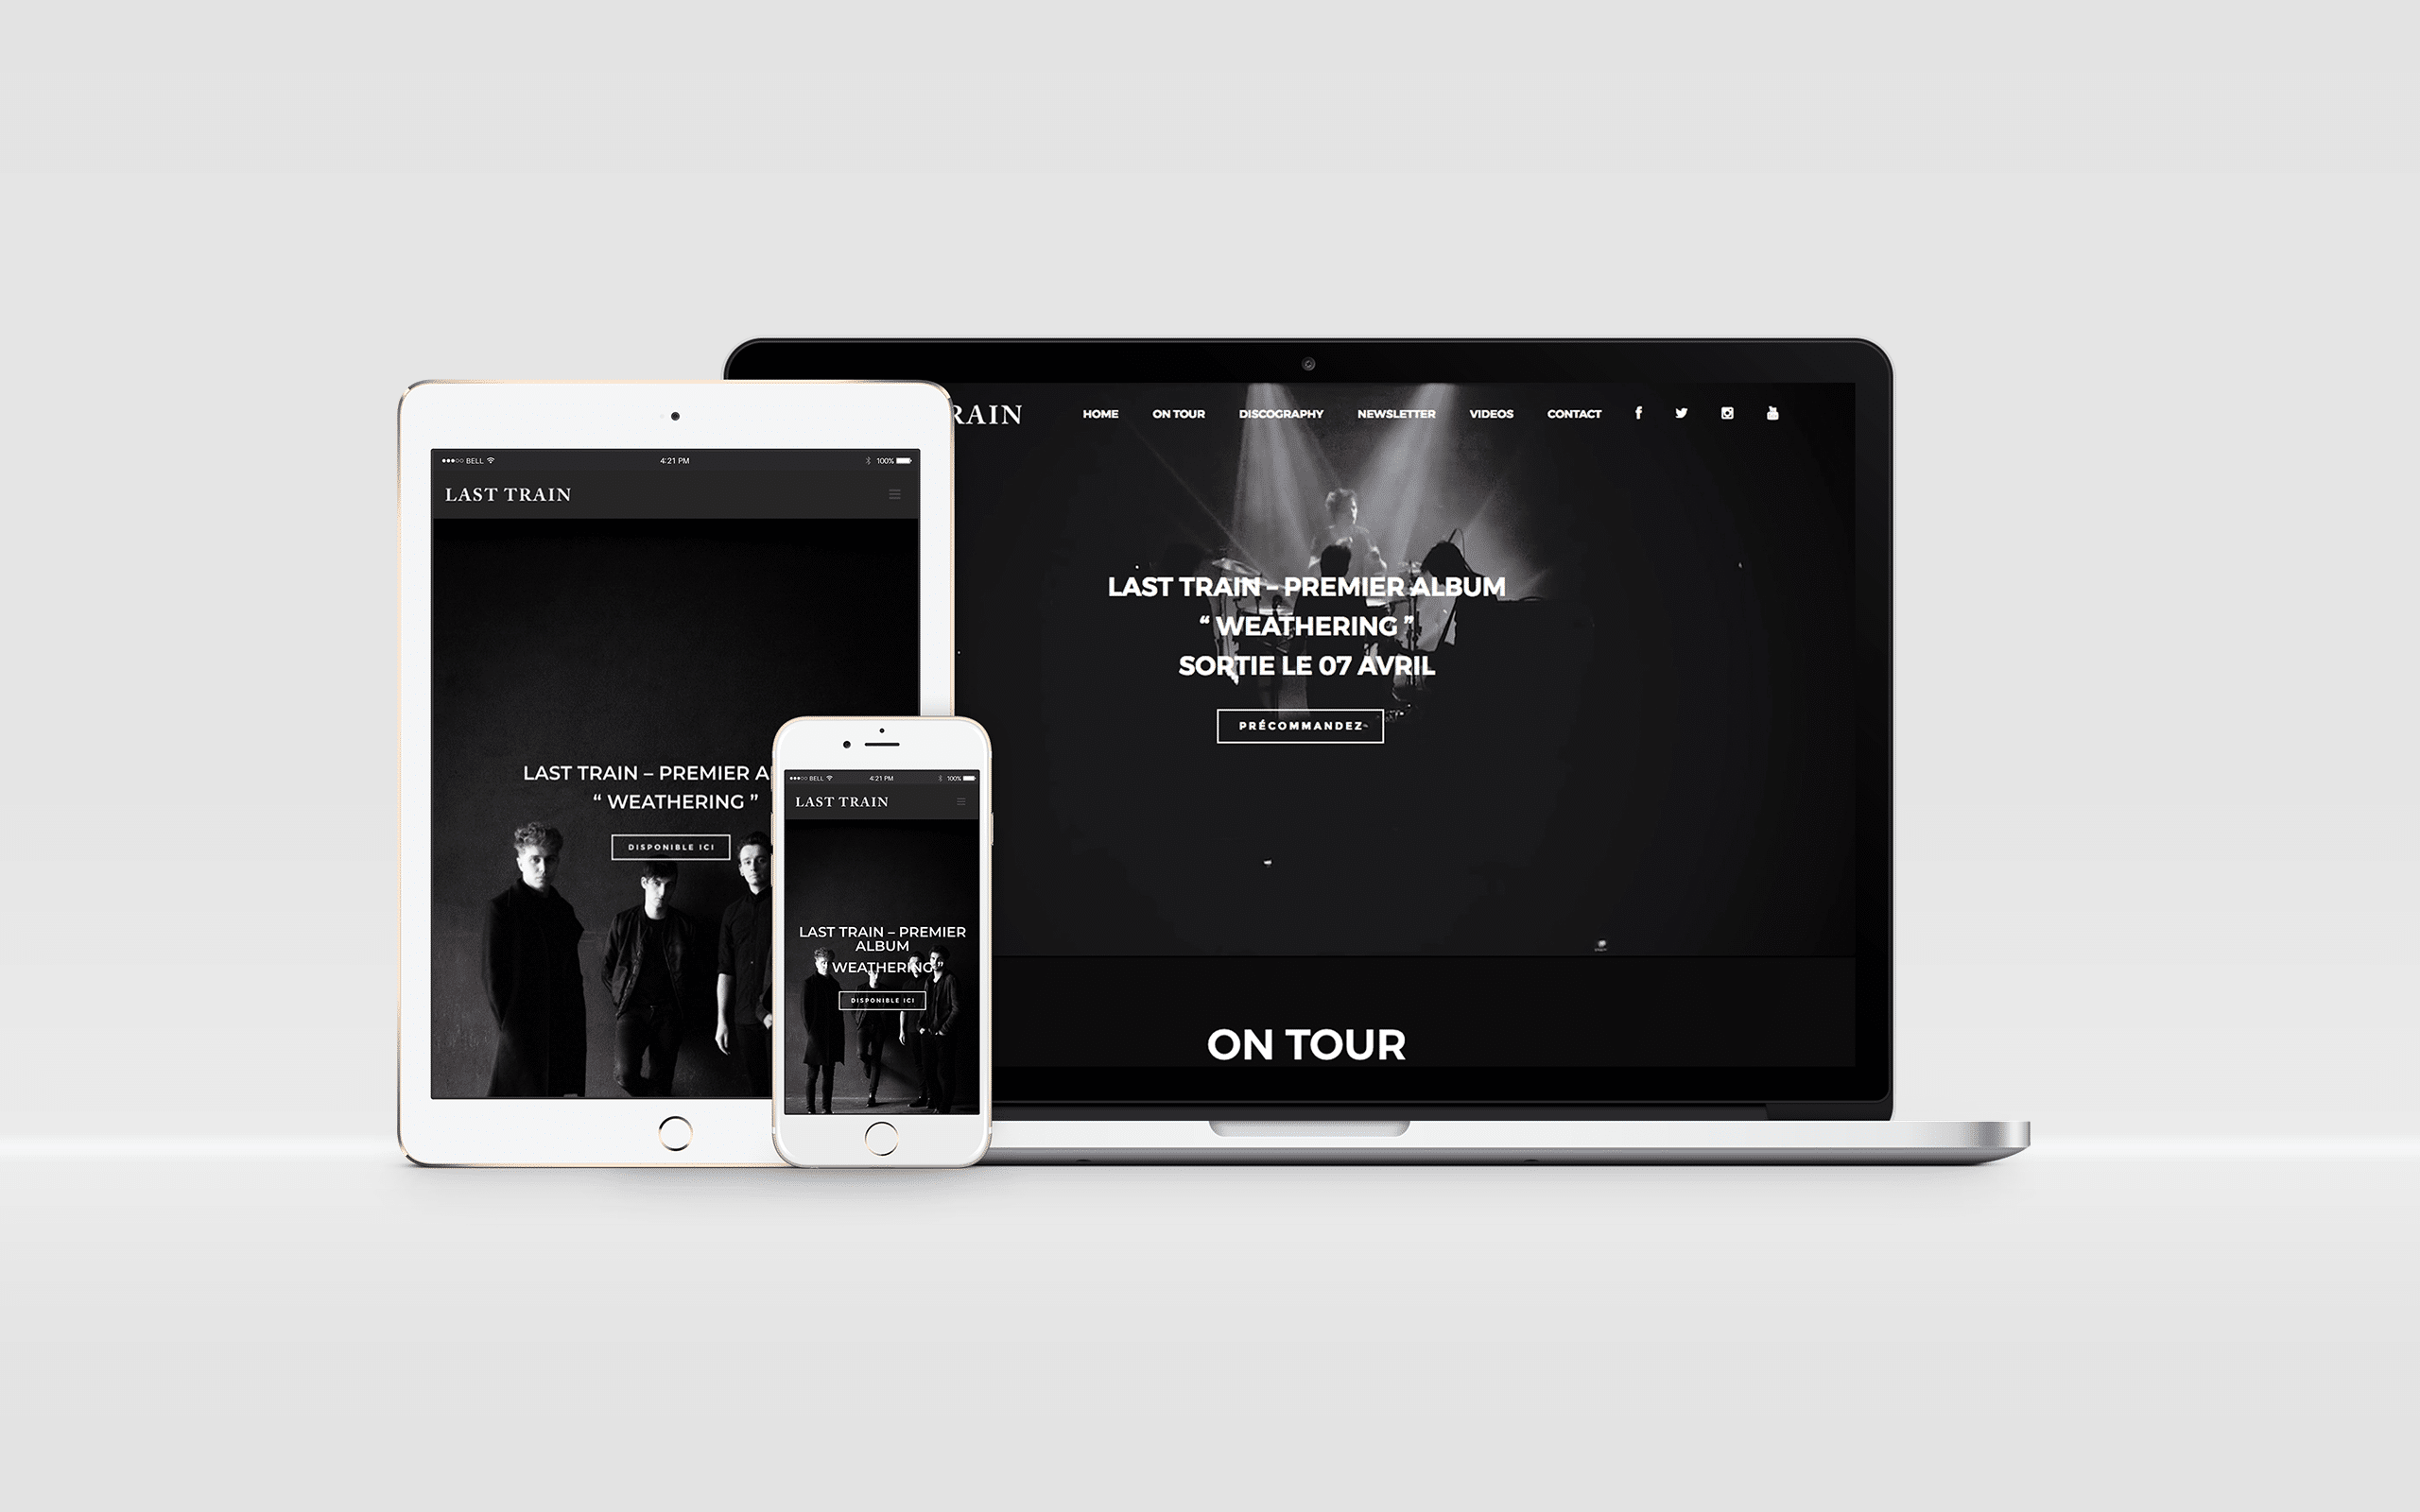 Mise en situation du site de Last Train avec iPad, iPhone et Macbook